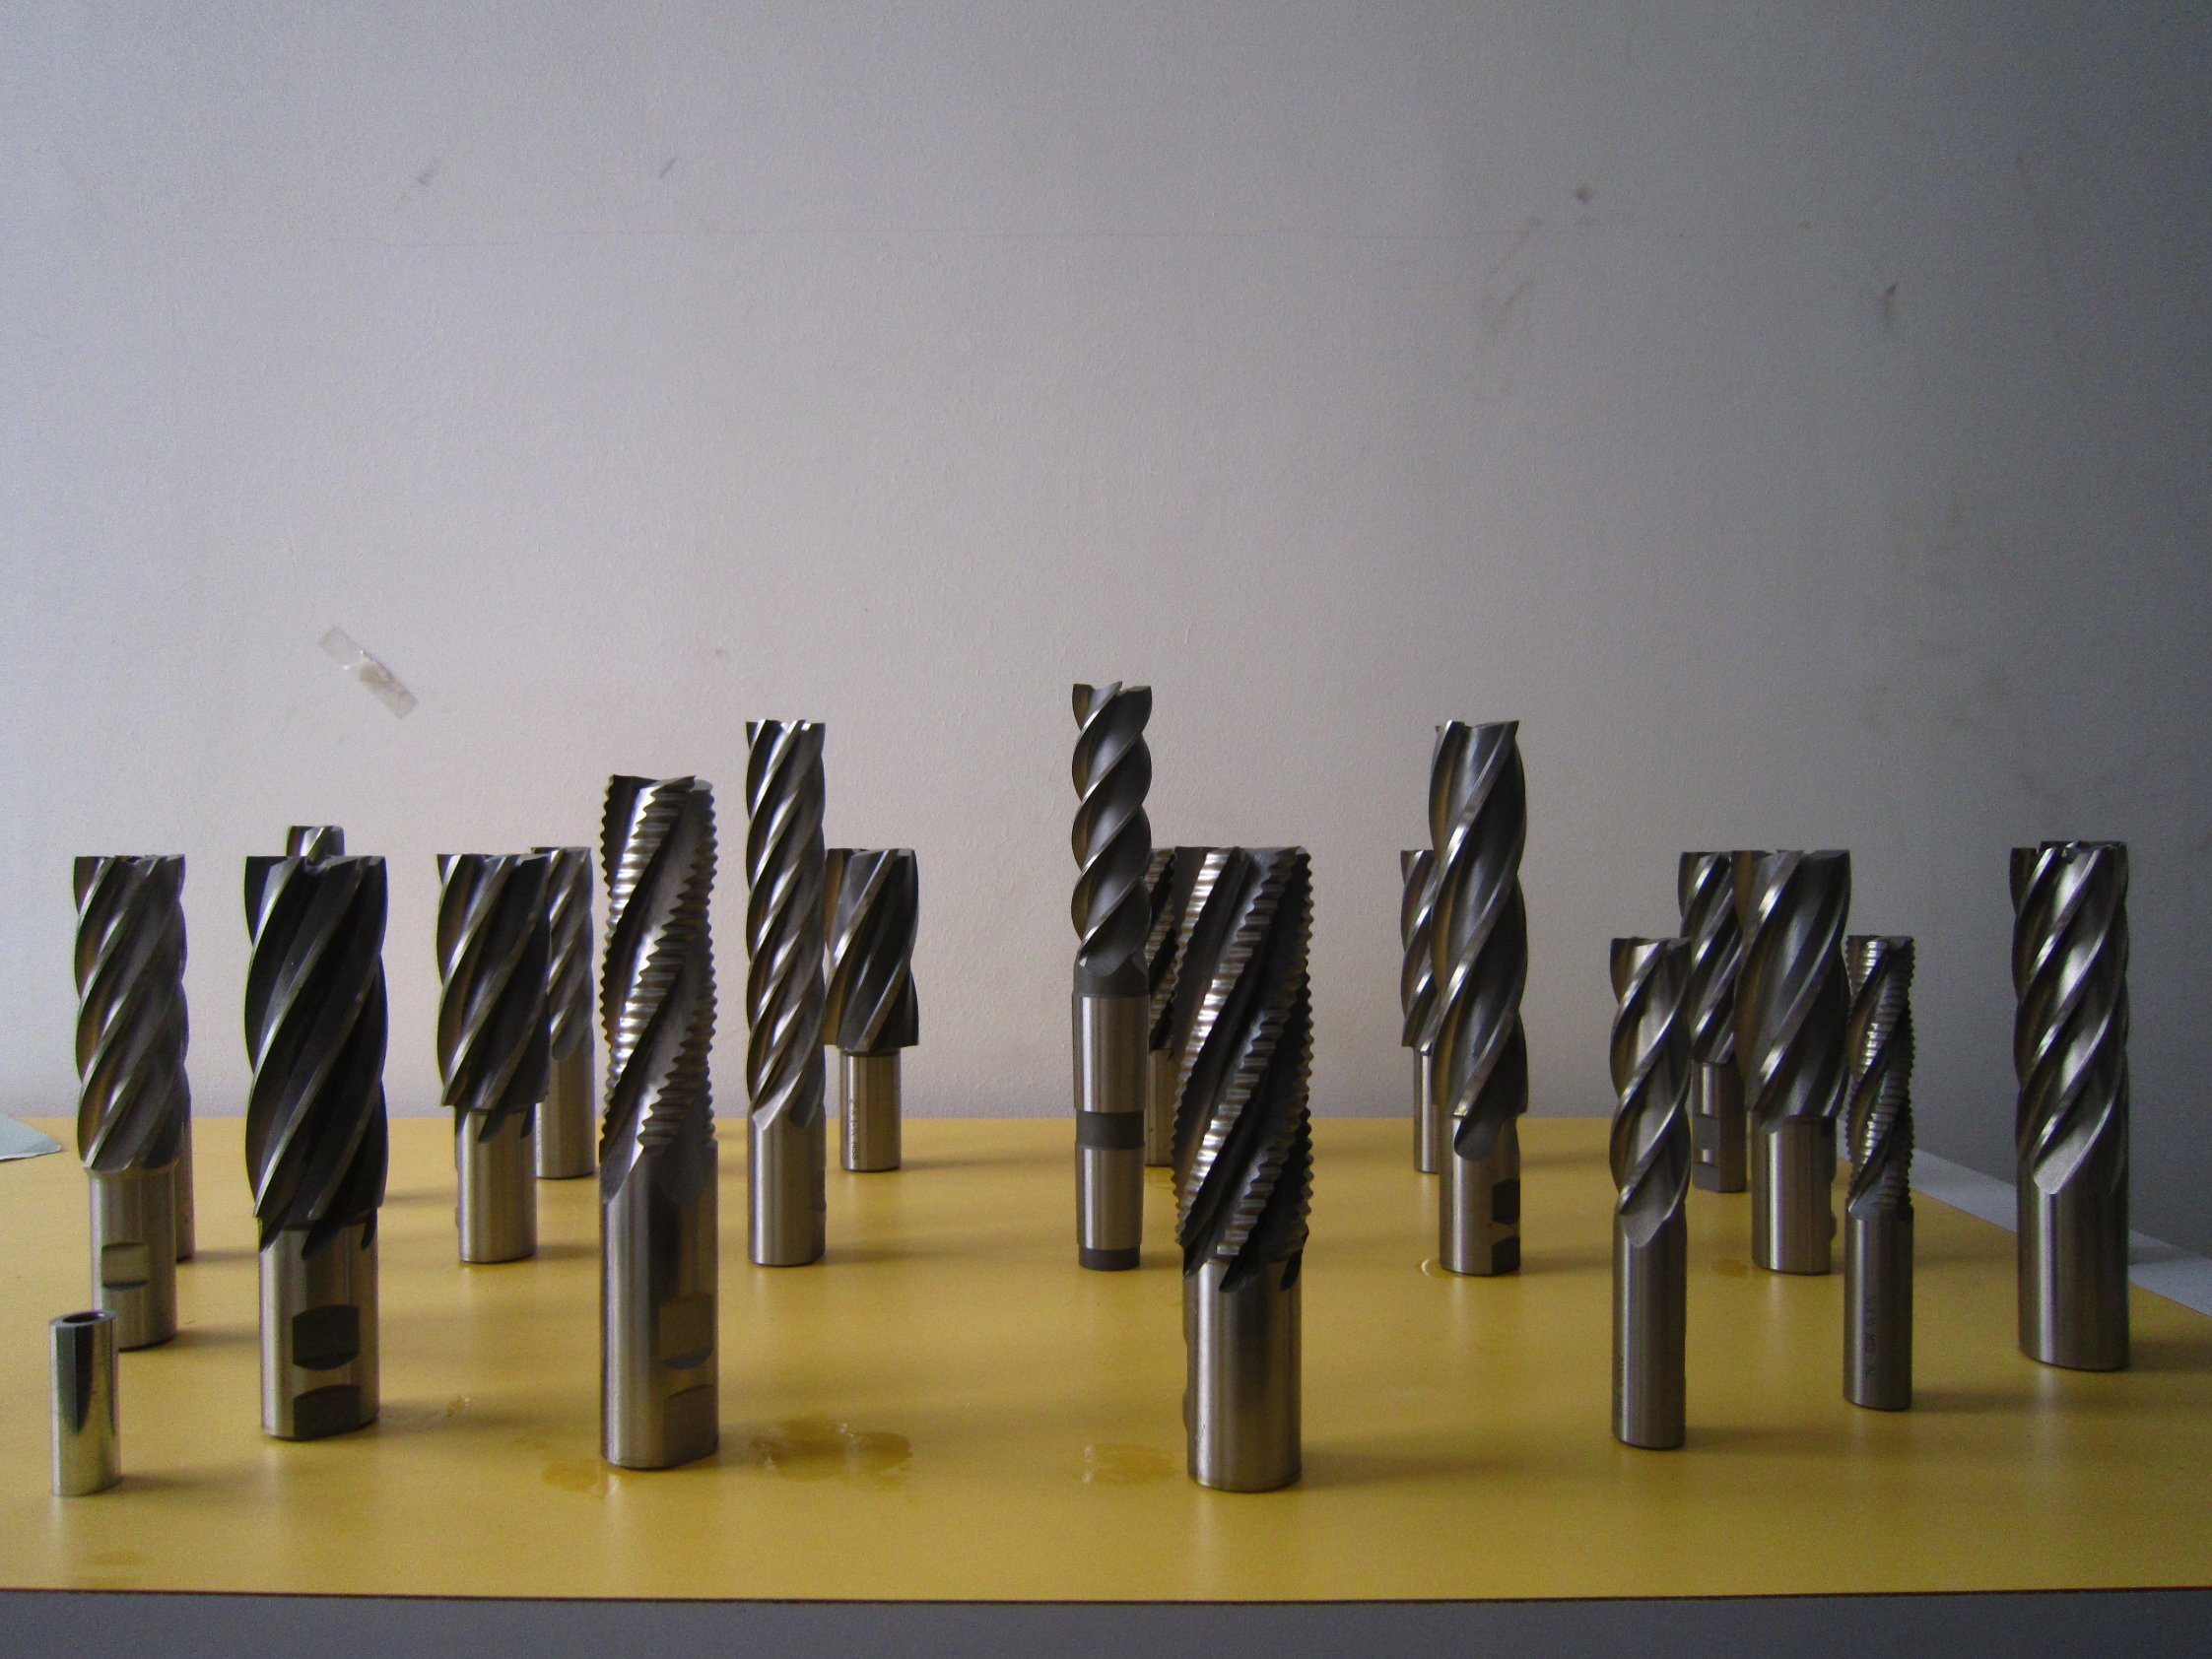 4 Flute Single End Mill